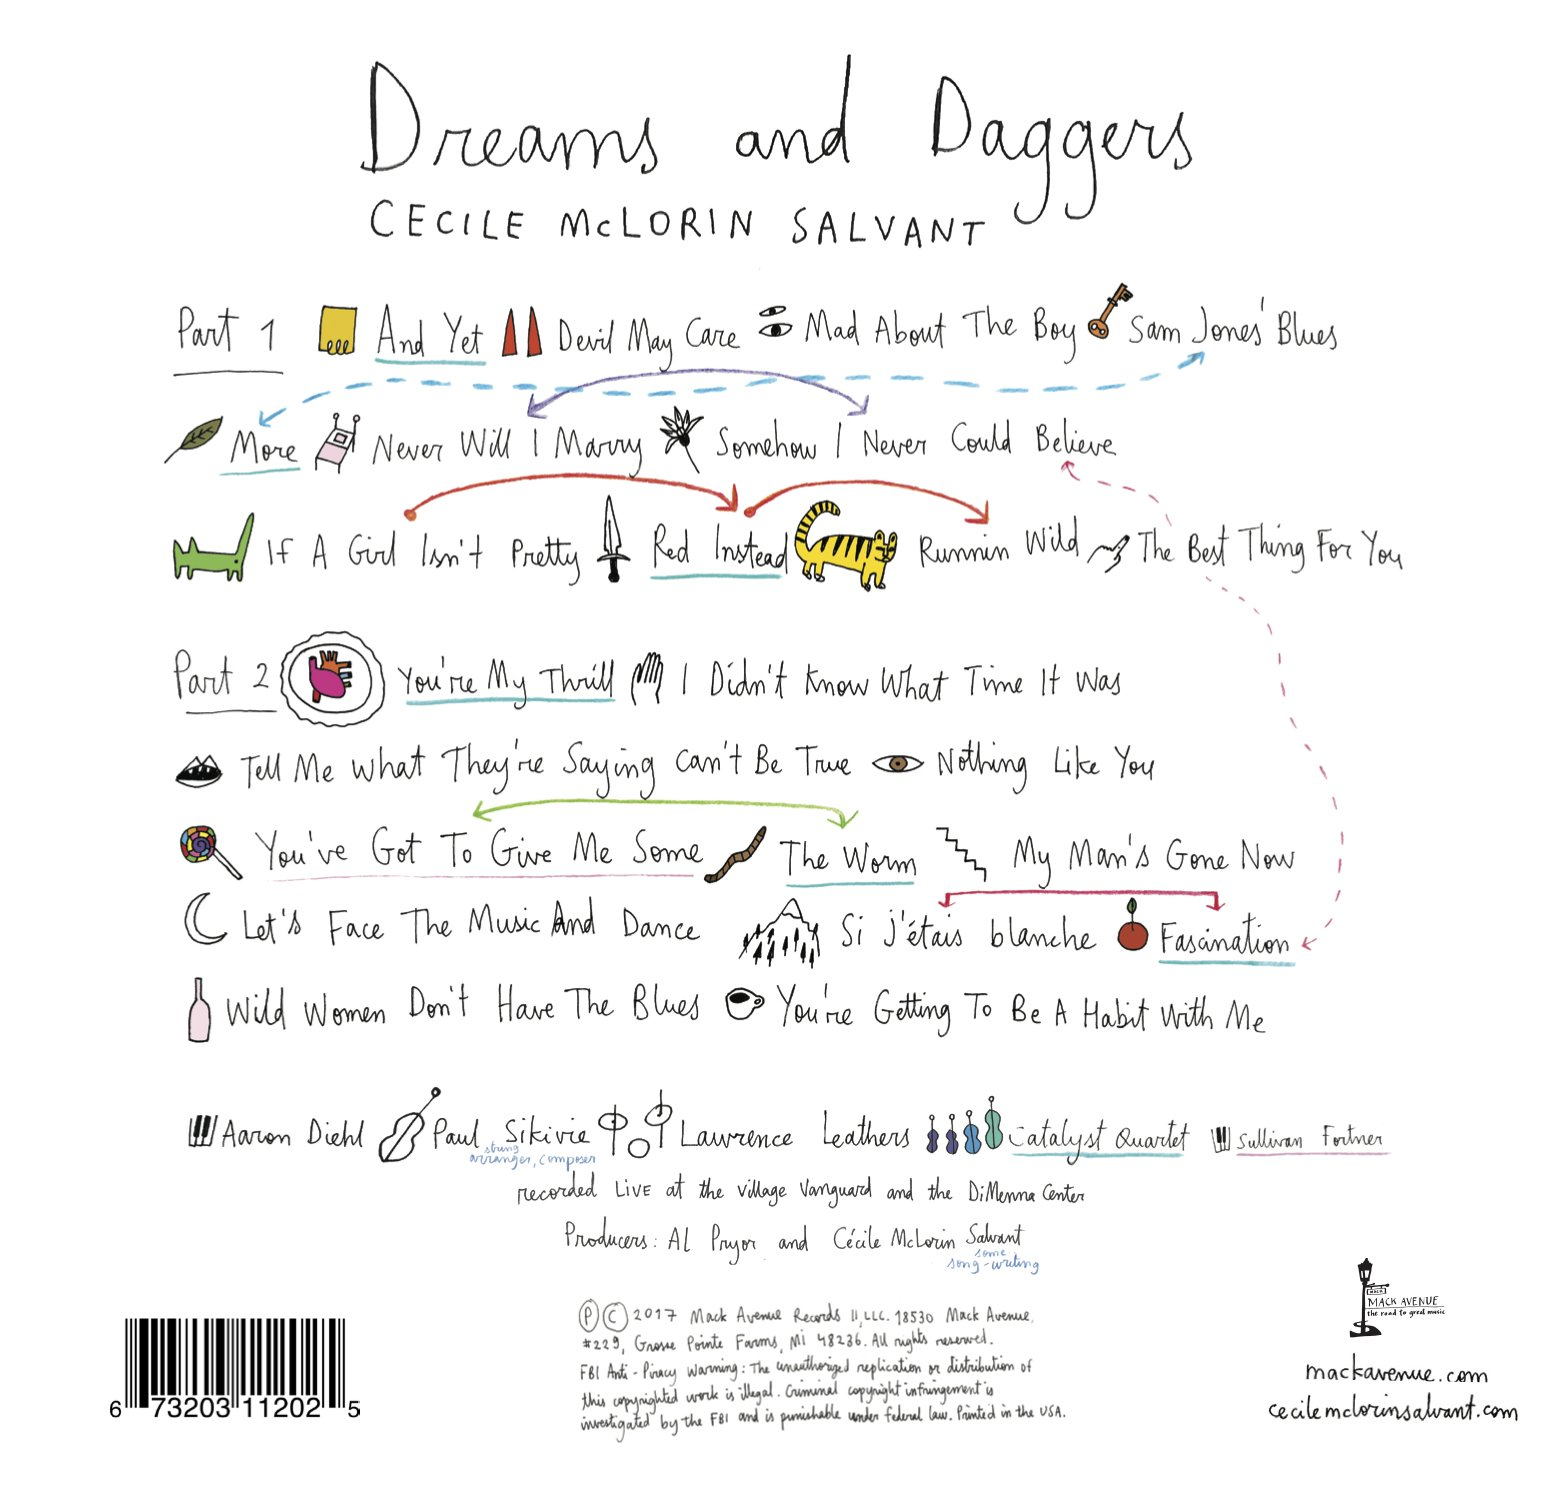 Dreams and Daggers - 2 CD set by Mack Avenue